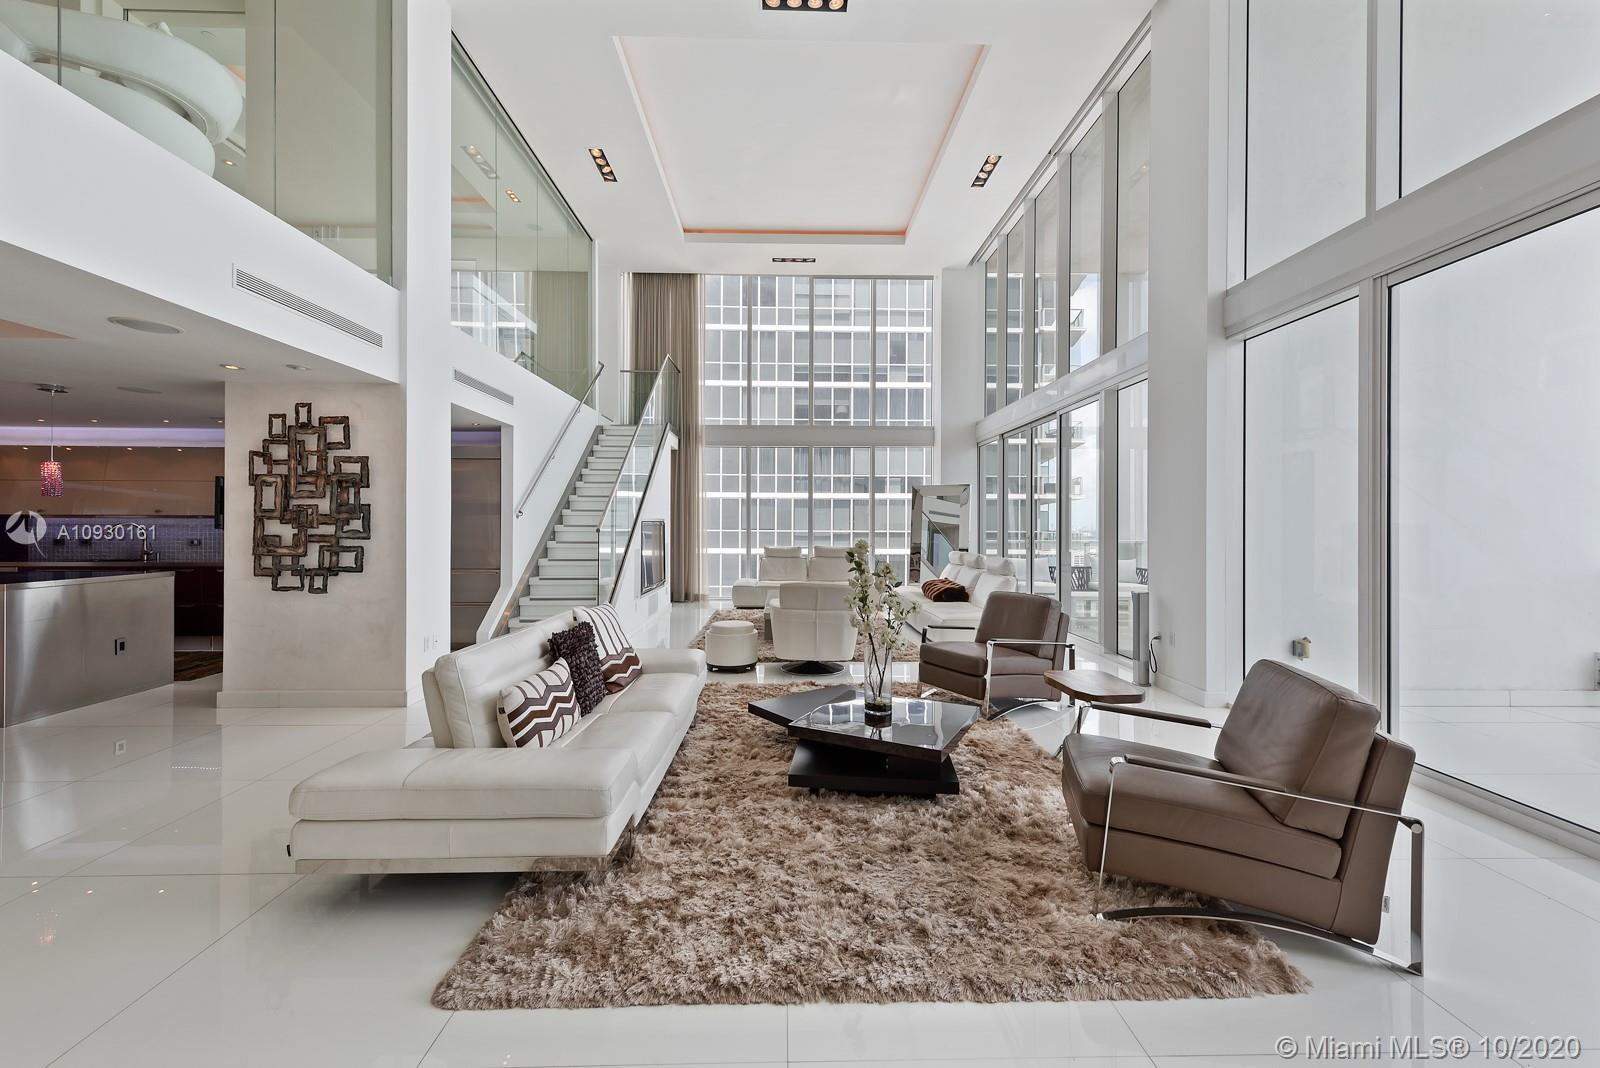 Exquisite tri-level, custom built, lower penthouse that boasts the finest details through-out, with